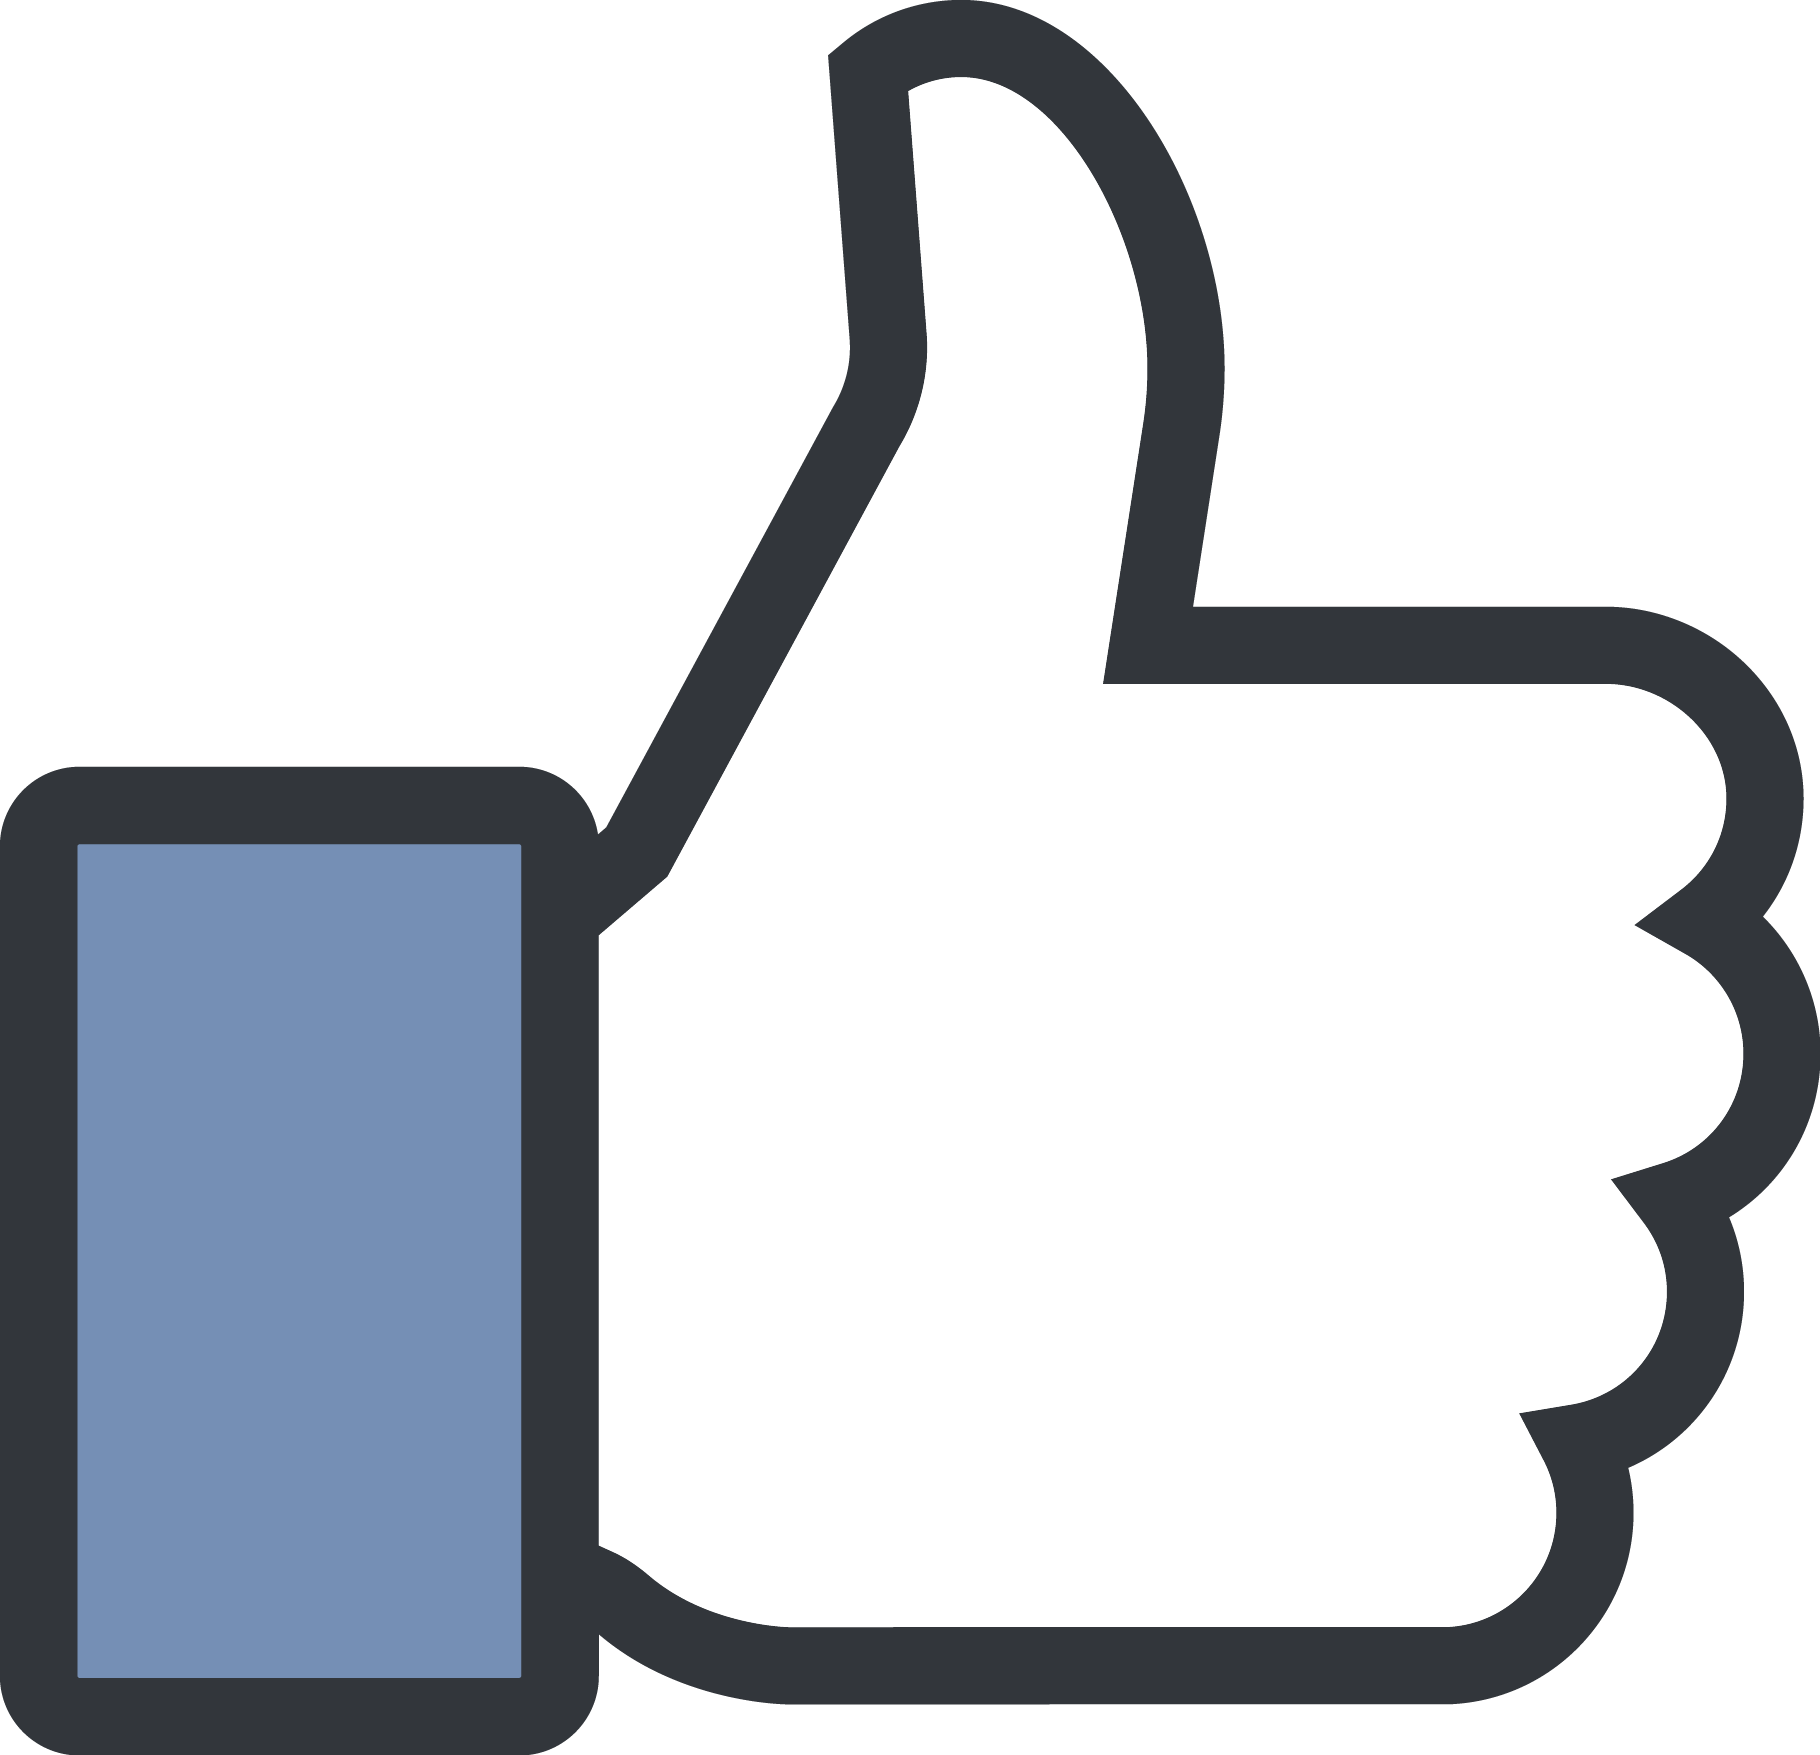 1820x1755 Facebook Like Button Vector Free Download Images